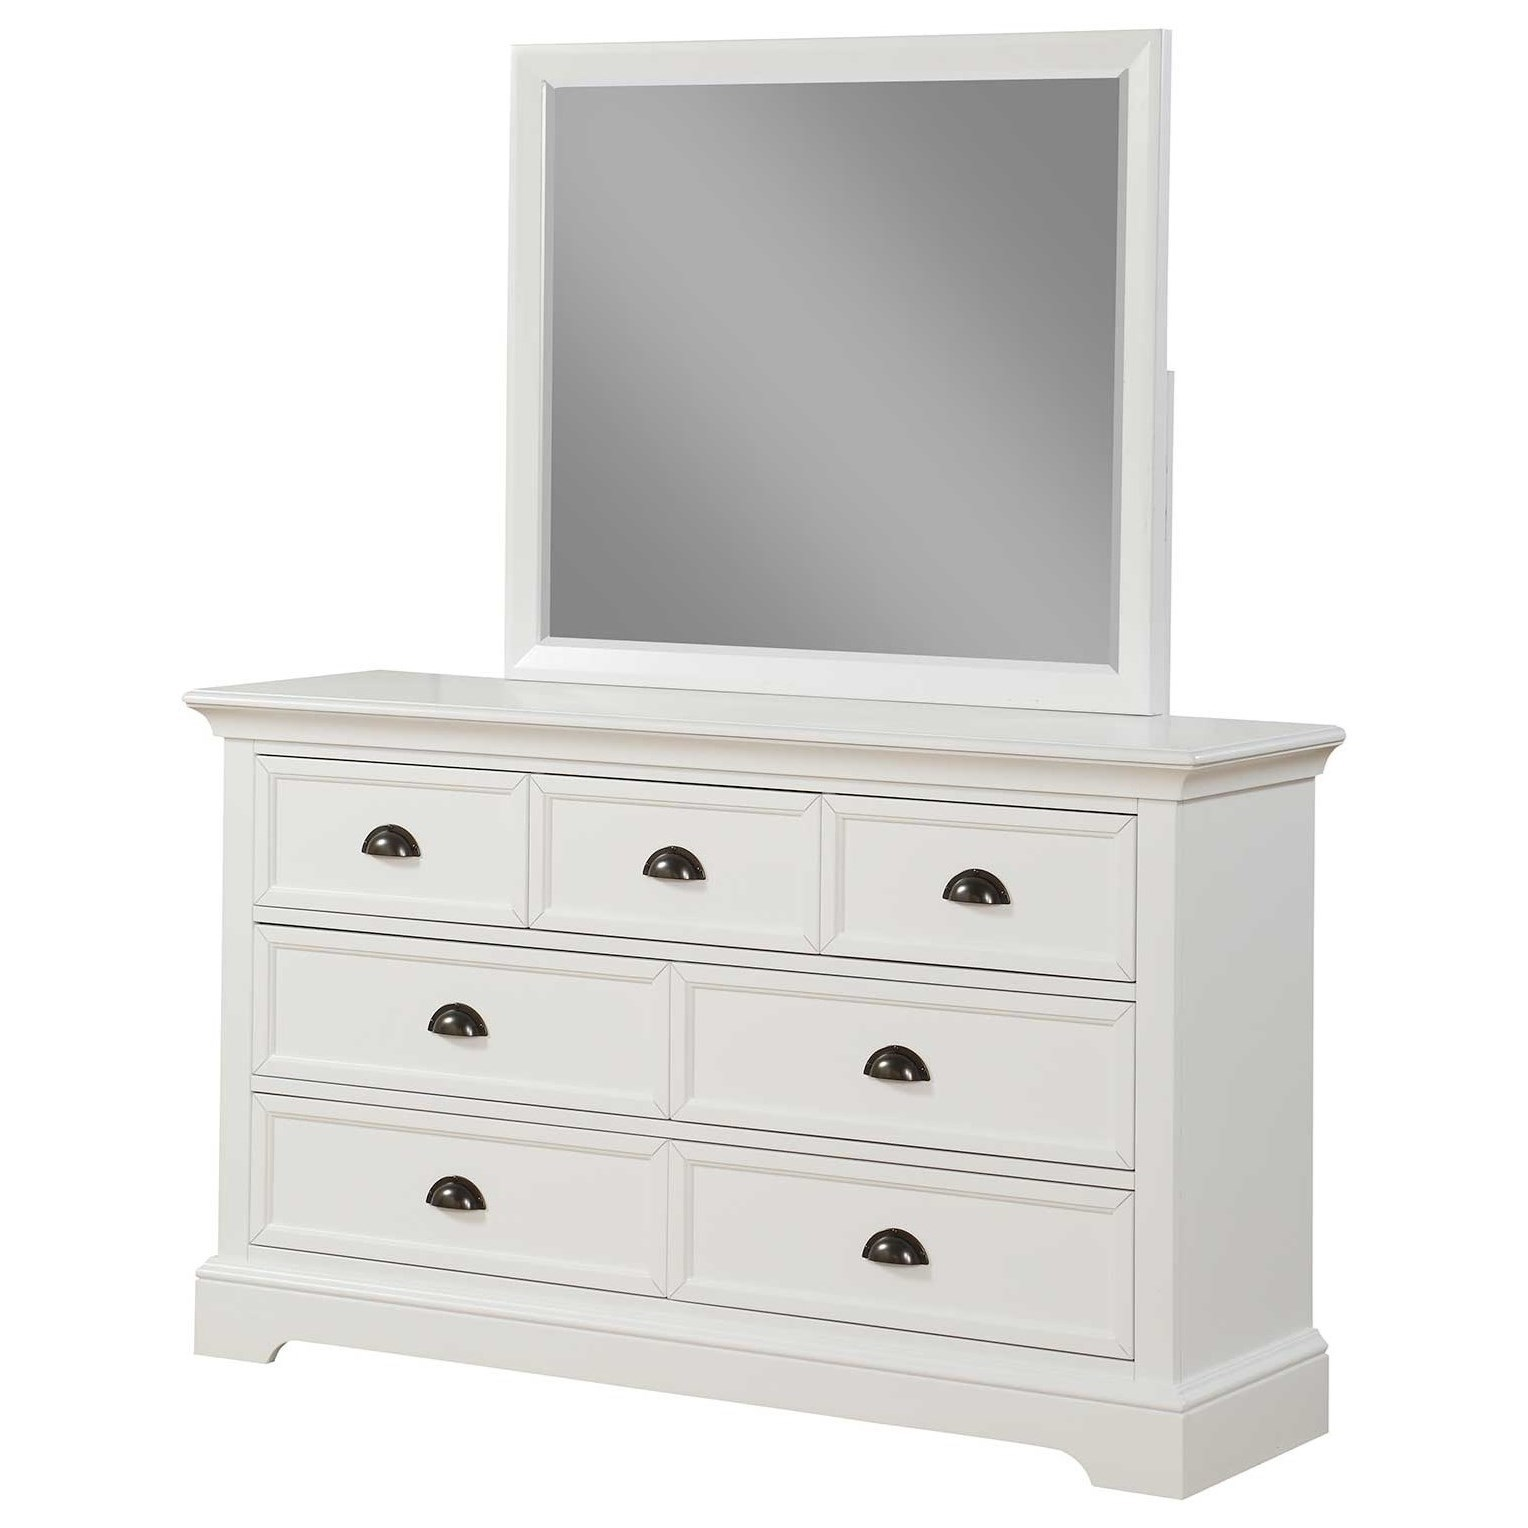 Tamarack Dresser and Mirror Set by Winners Only at Crowley Furniture & Mattress